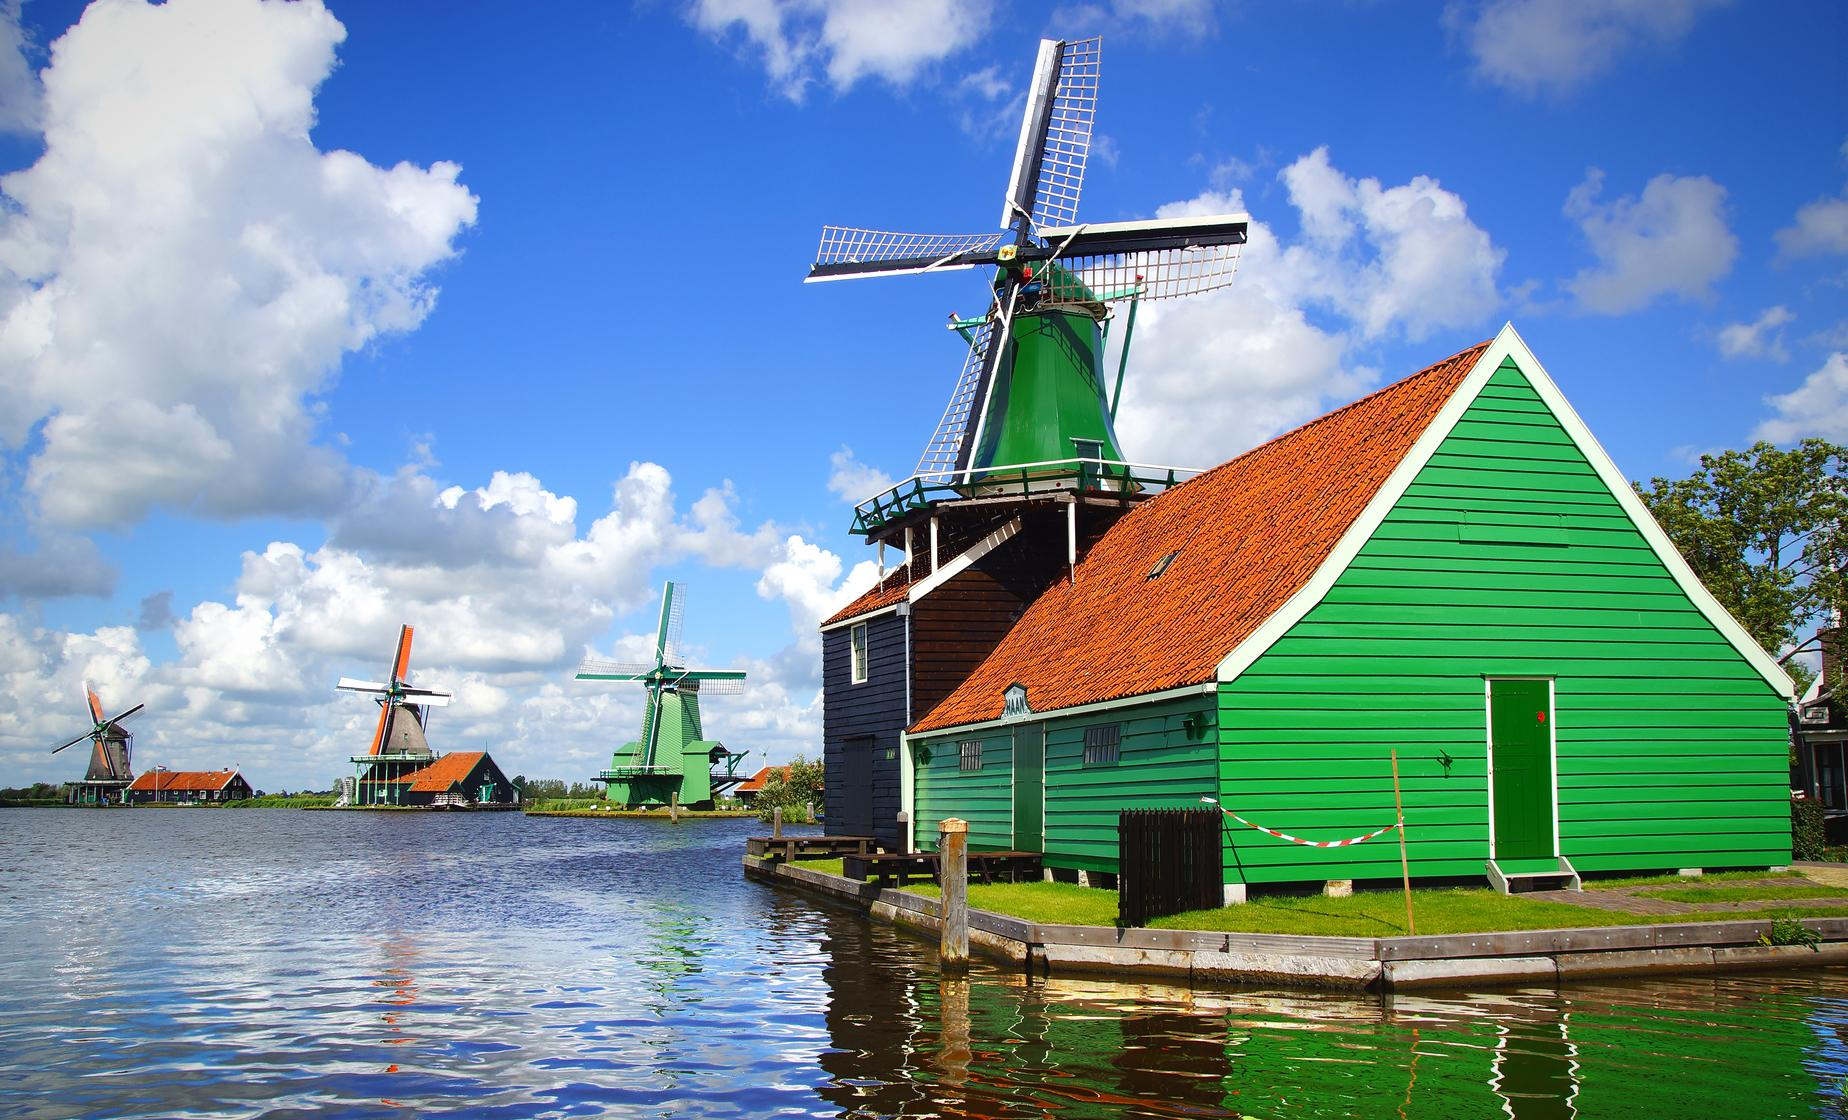 Private City and Windmill Tour in Amsterdam (Zaanse Schans, Amstel River)